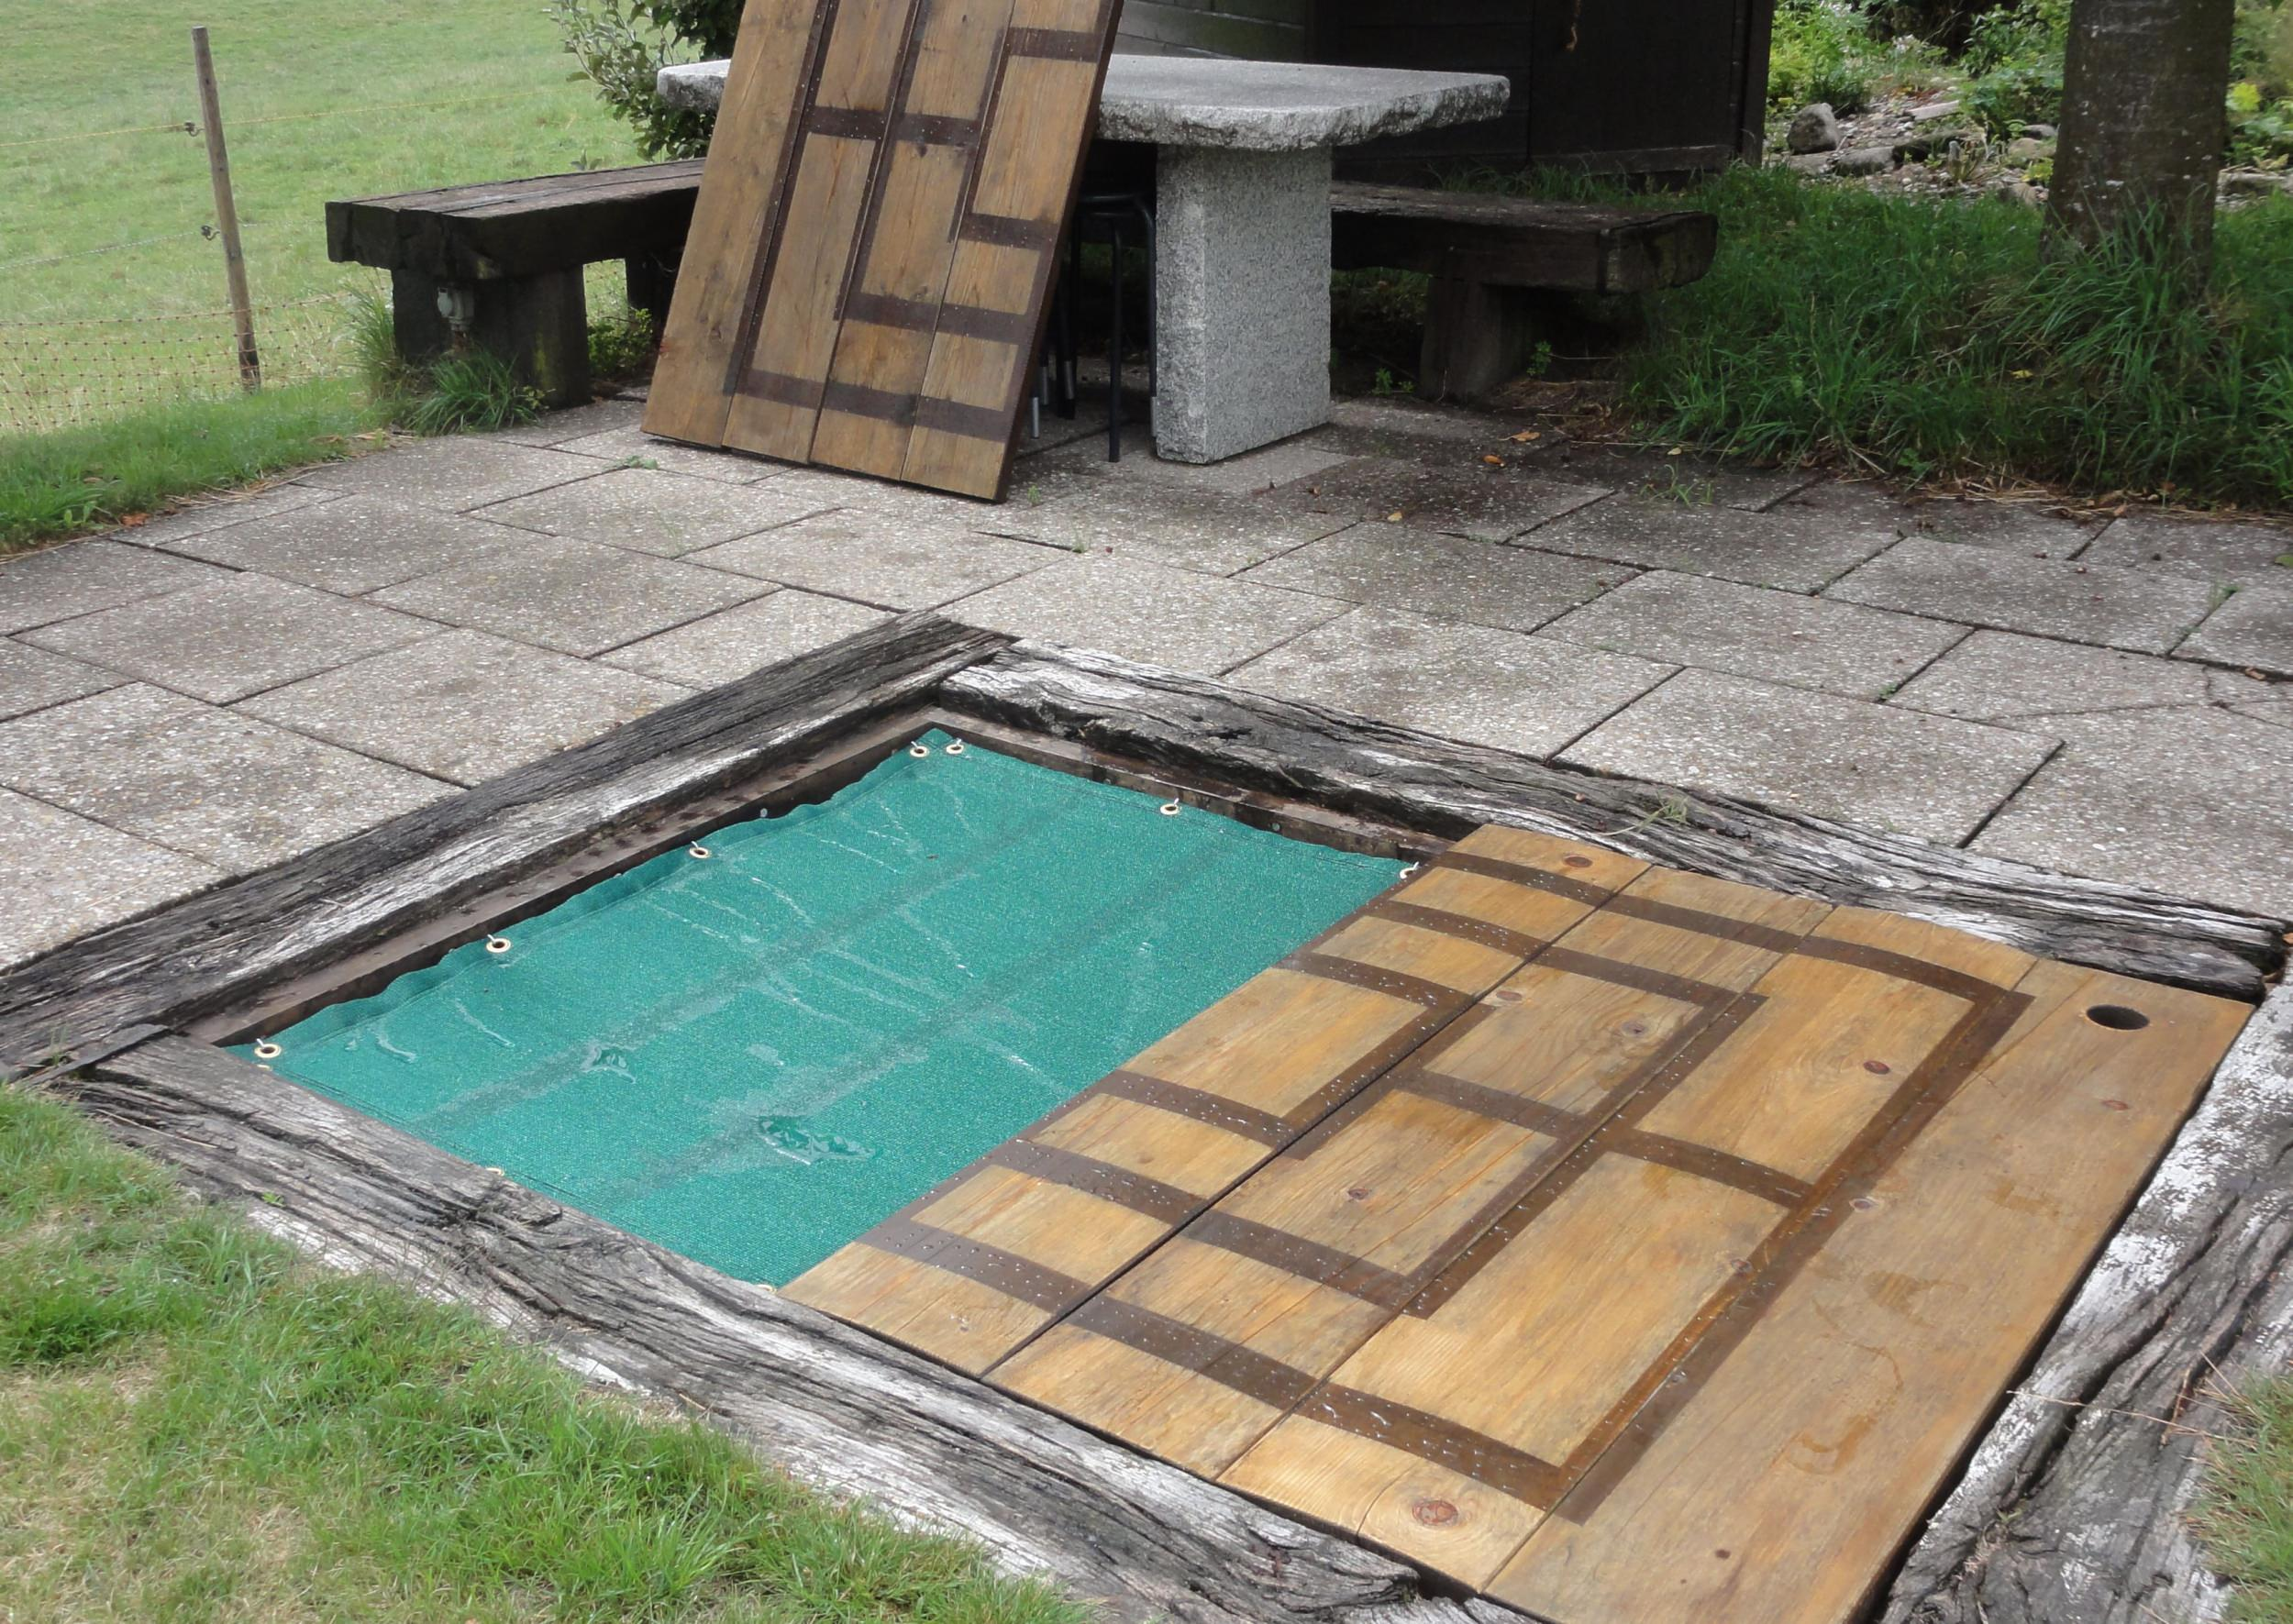 Future Pool Abdeckung Protect Air Permeable Sandbox Cover Sheet By The M² Custom Made